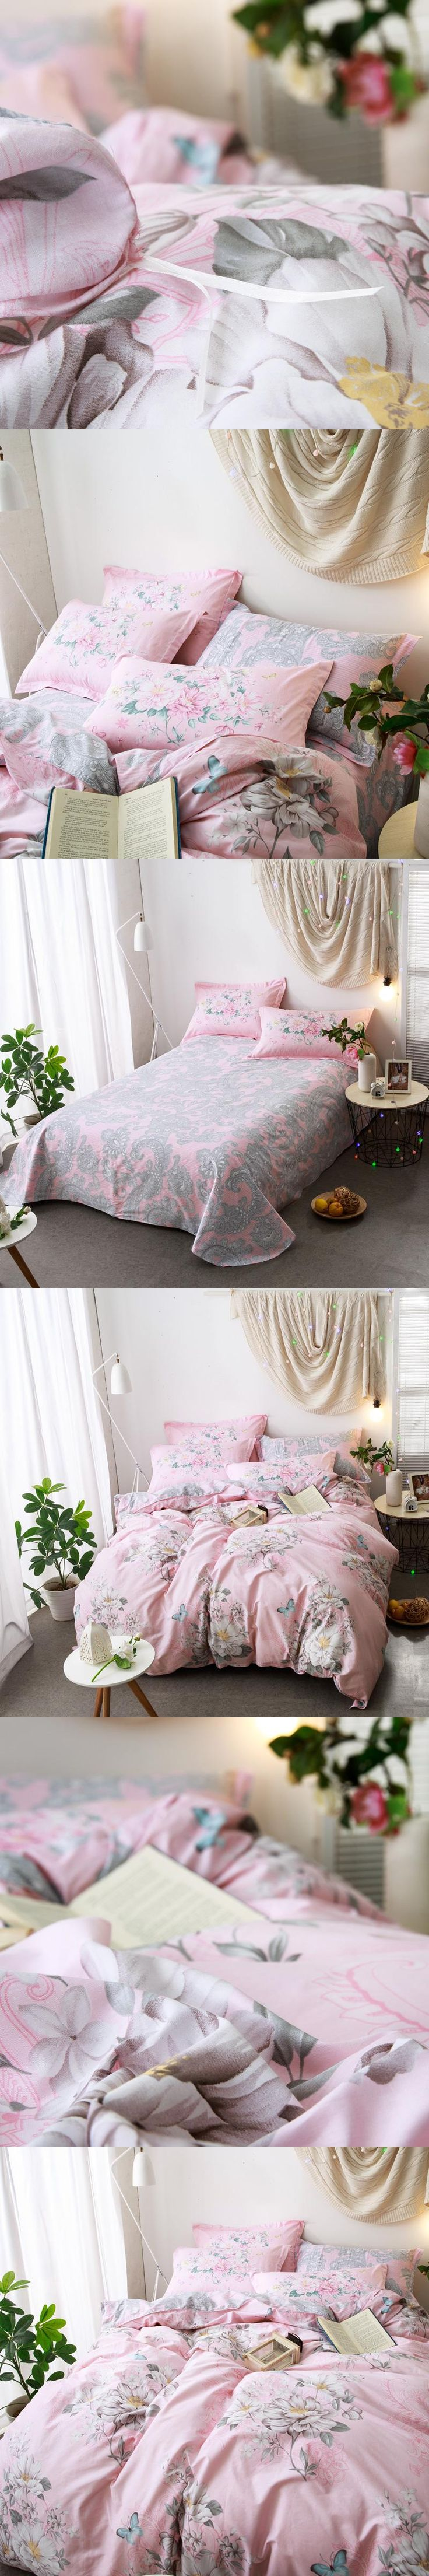 arnigu new elegant flower butterfly print bedlinen cotton bedclothes twin queen double bedding sets pink duvet